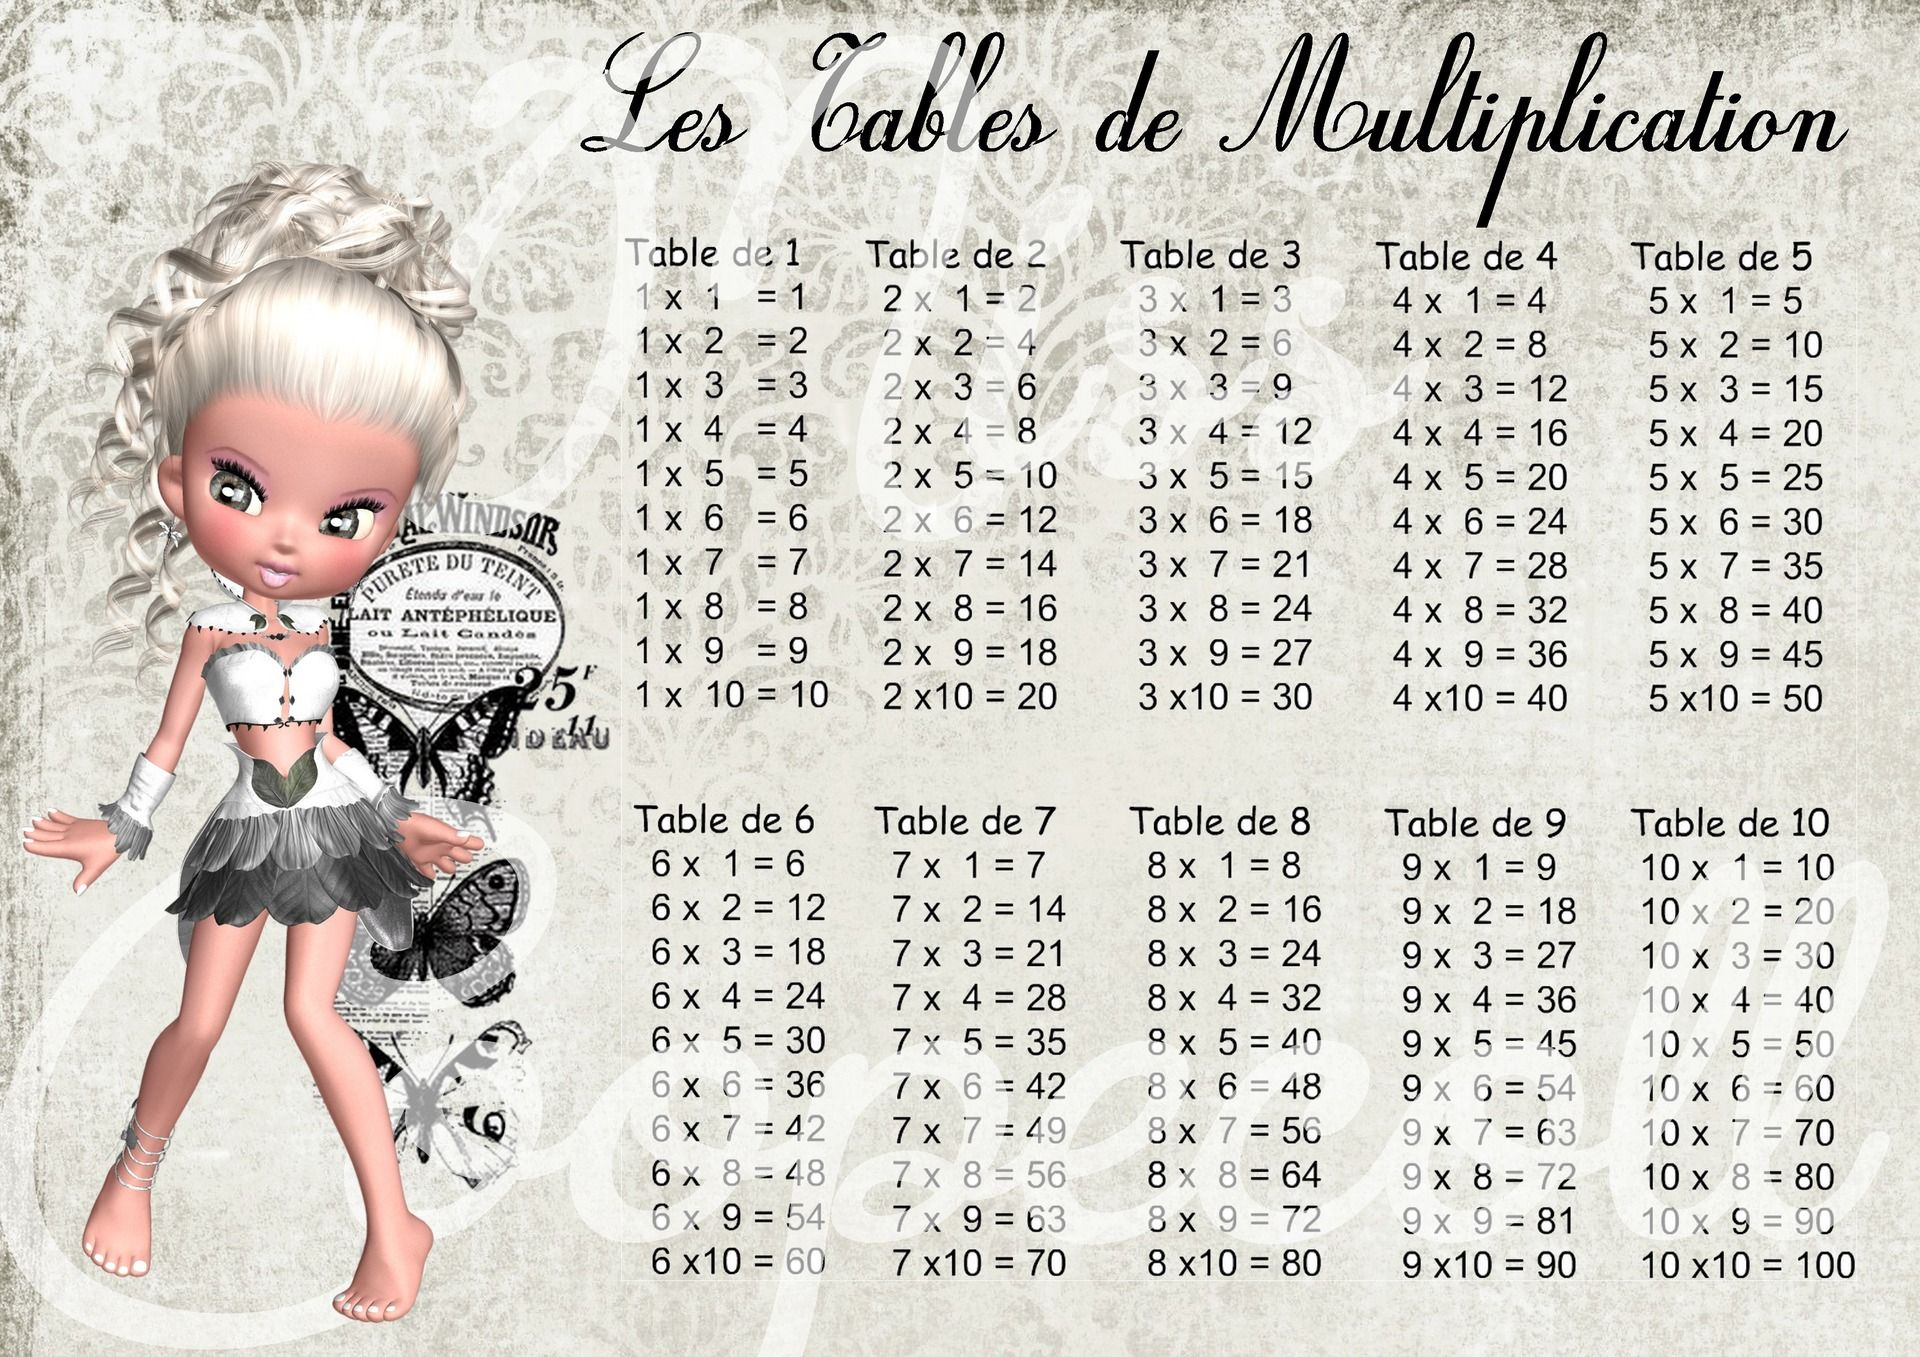 Table de multiplication a imprimer format a4 - Table de multiplication a imprimer ...